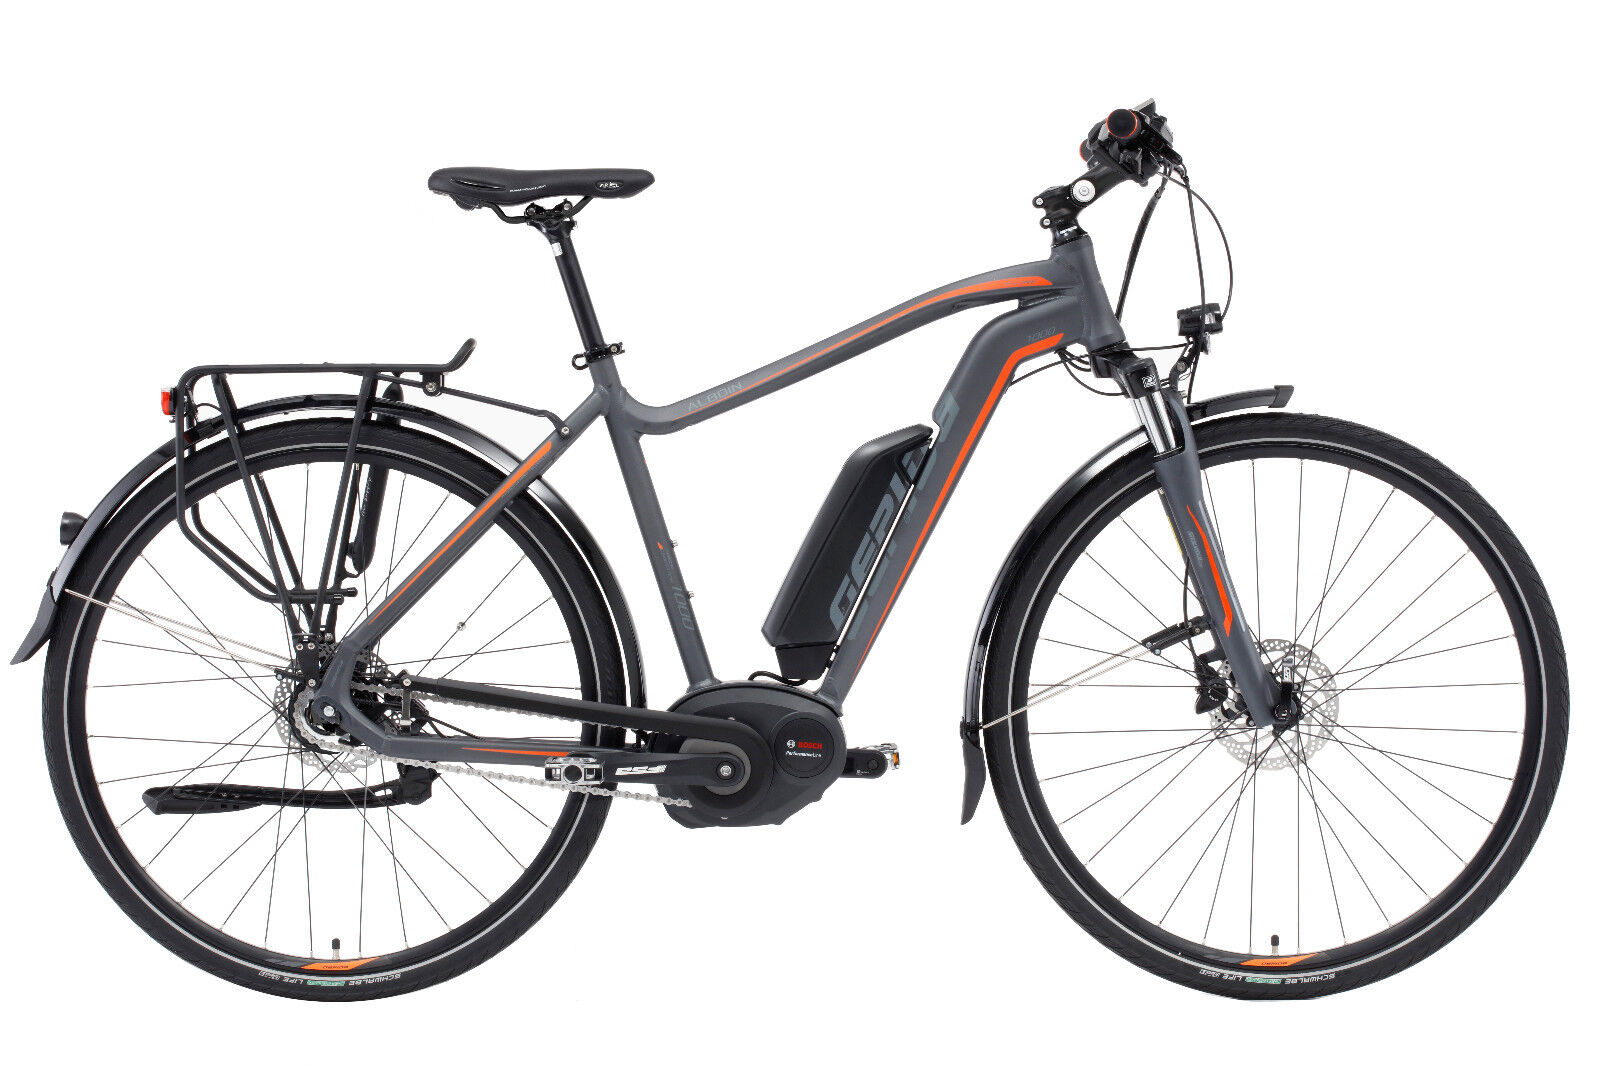 BOSCH Performance Premium Commuter Electric Bicycle eBike Mid Drive ALBOIN 1000 (New - 2688 USD)